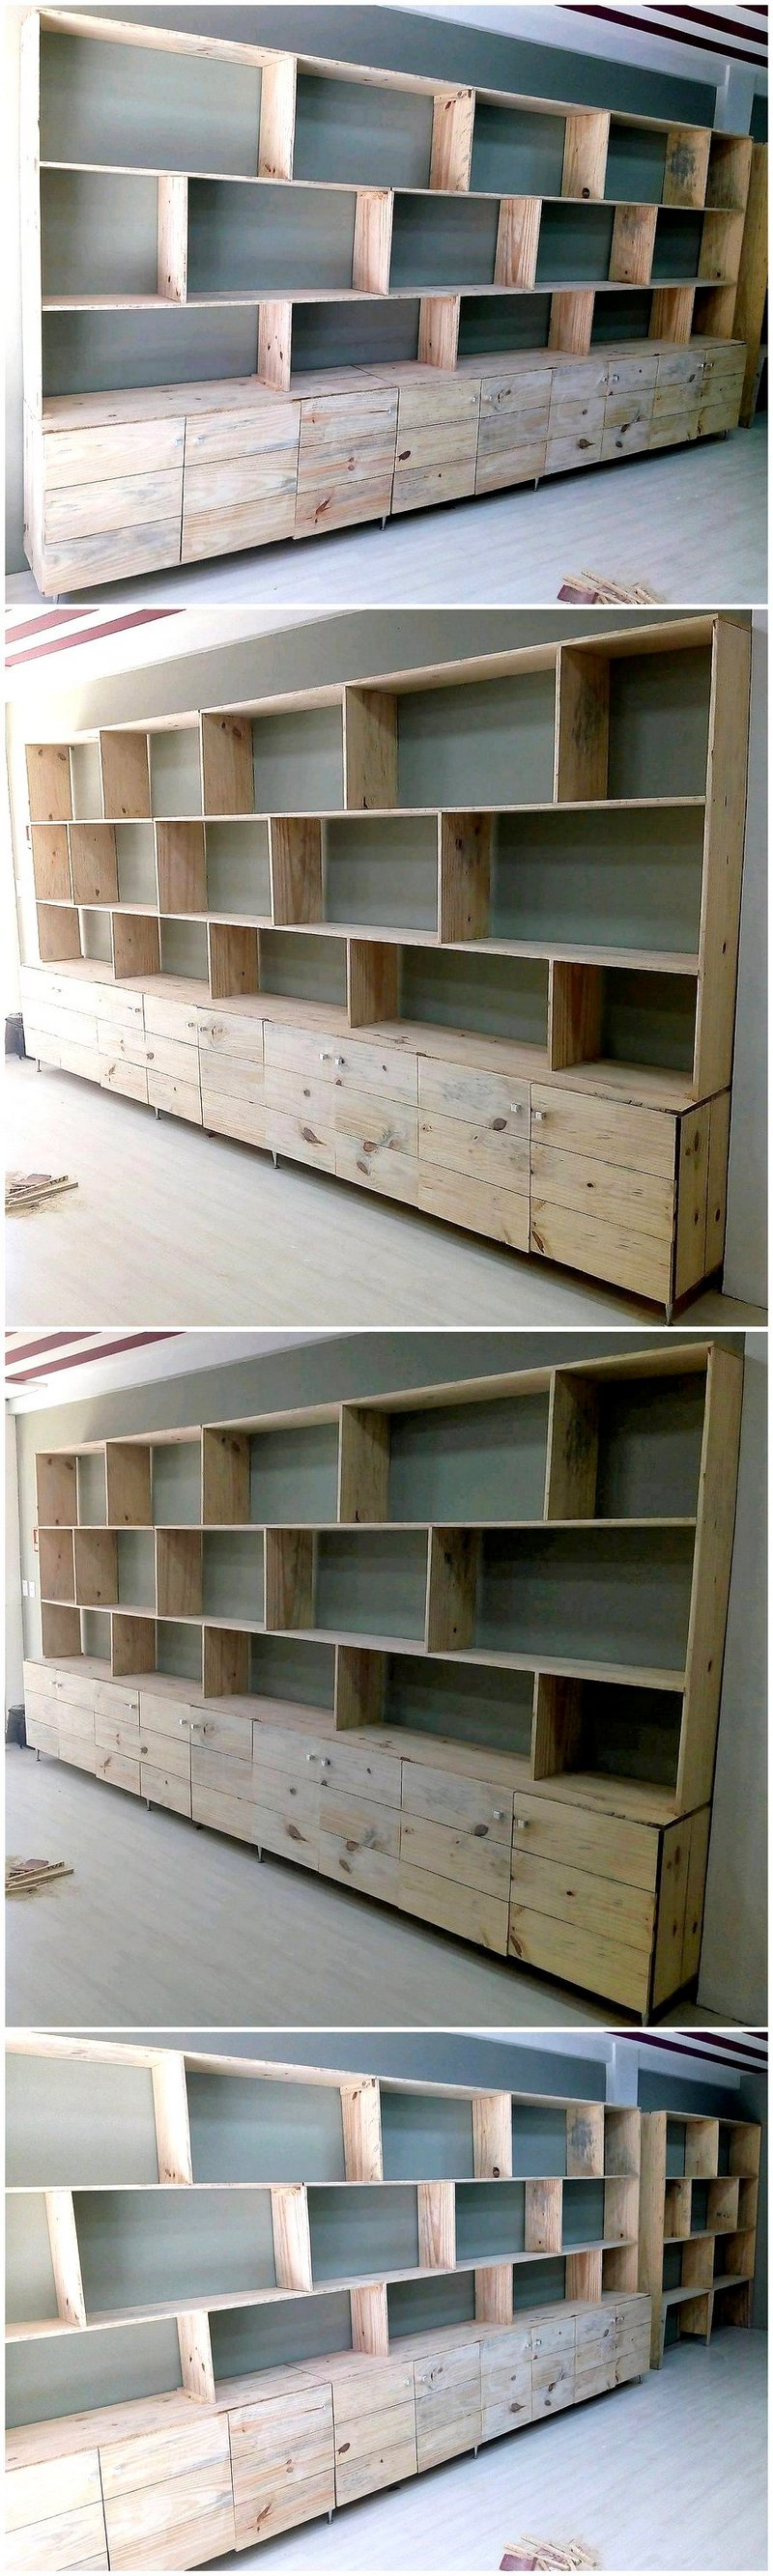 pallet shelves and drawers projects